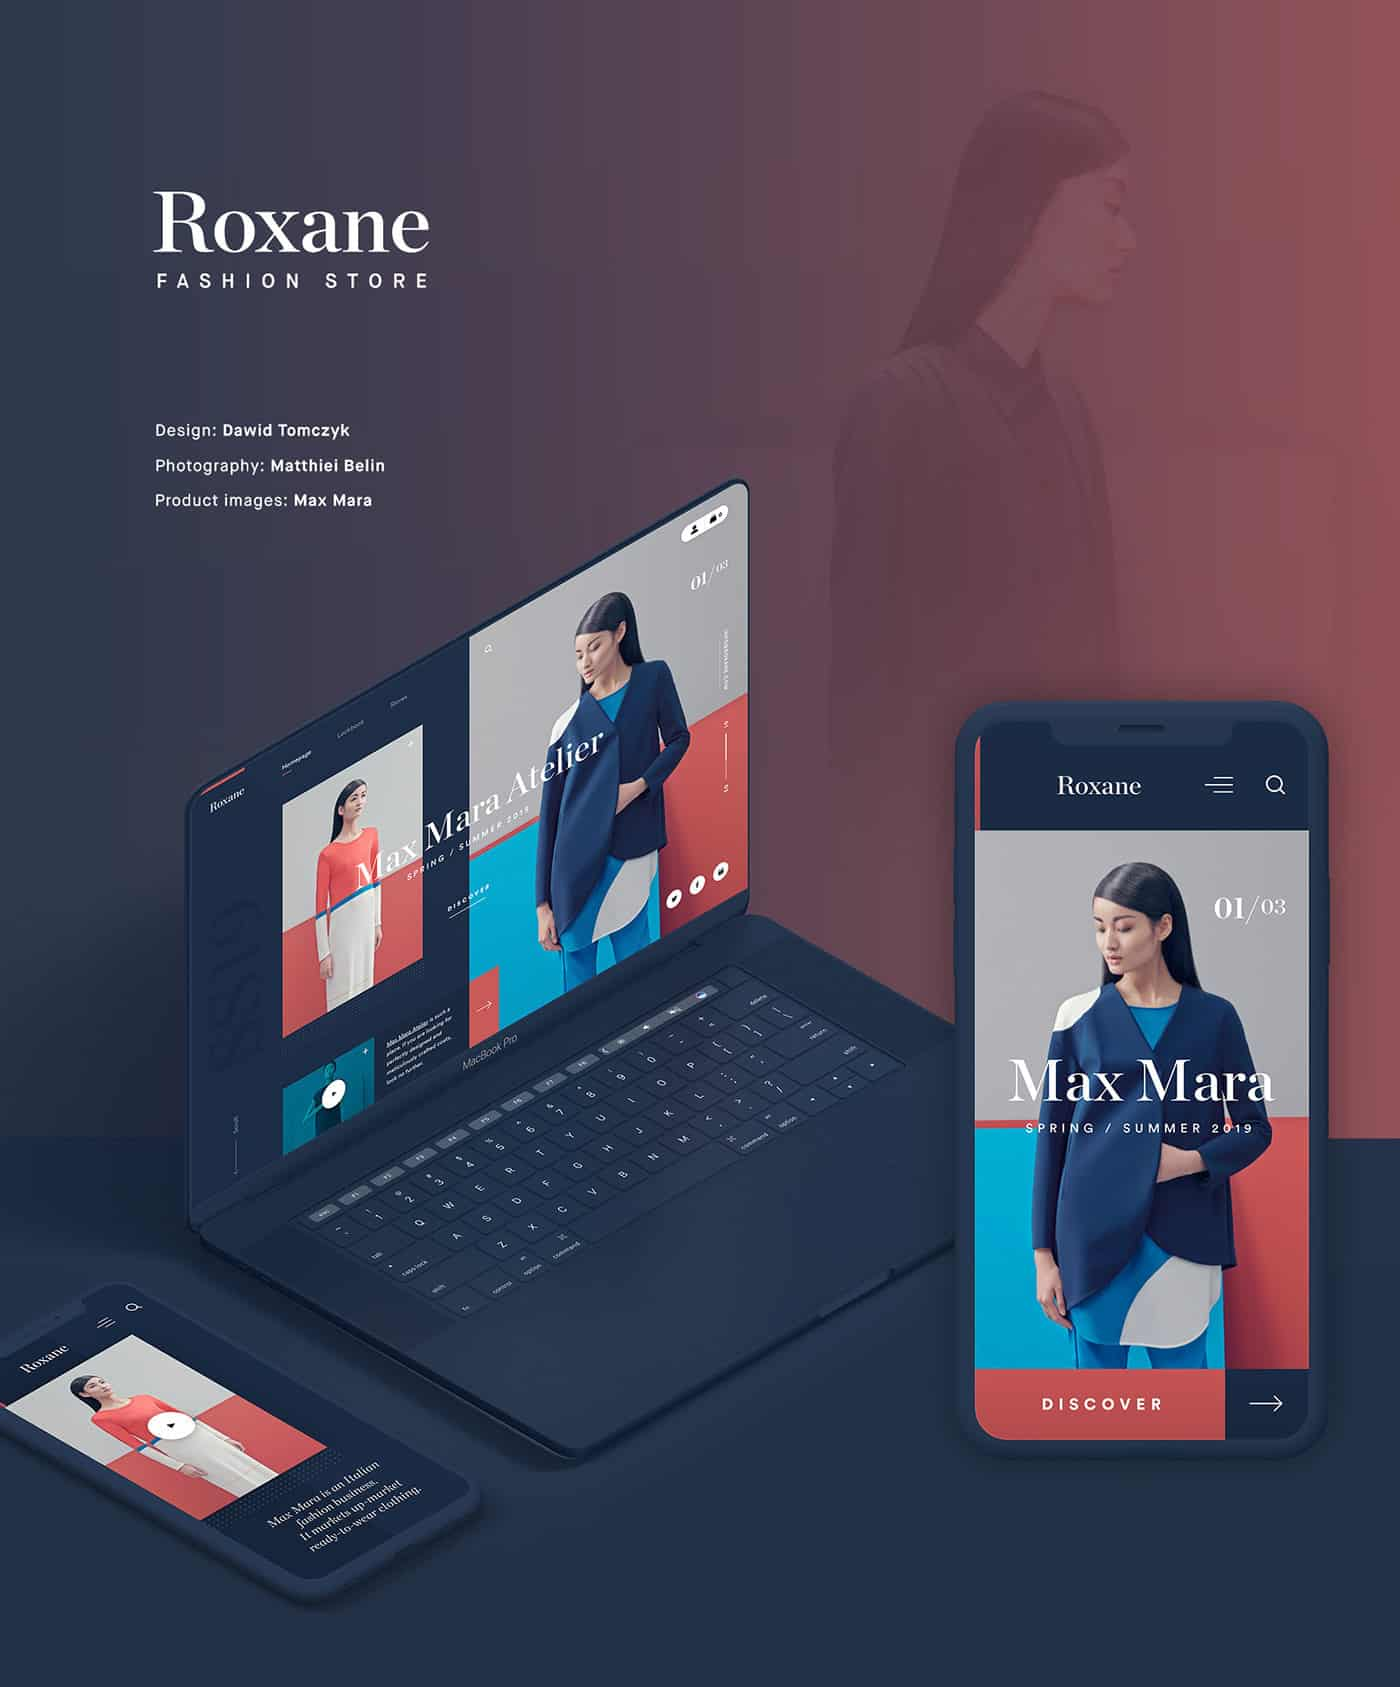 UI UX | Fashion Store Website Mock